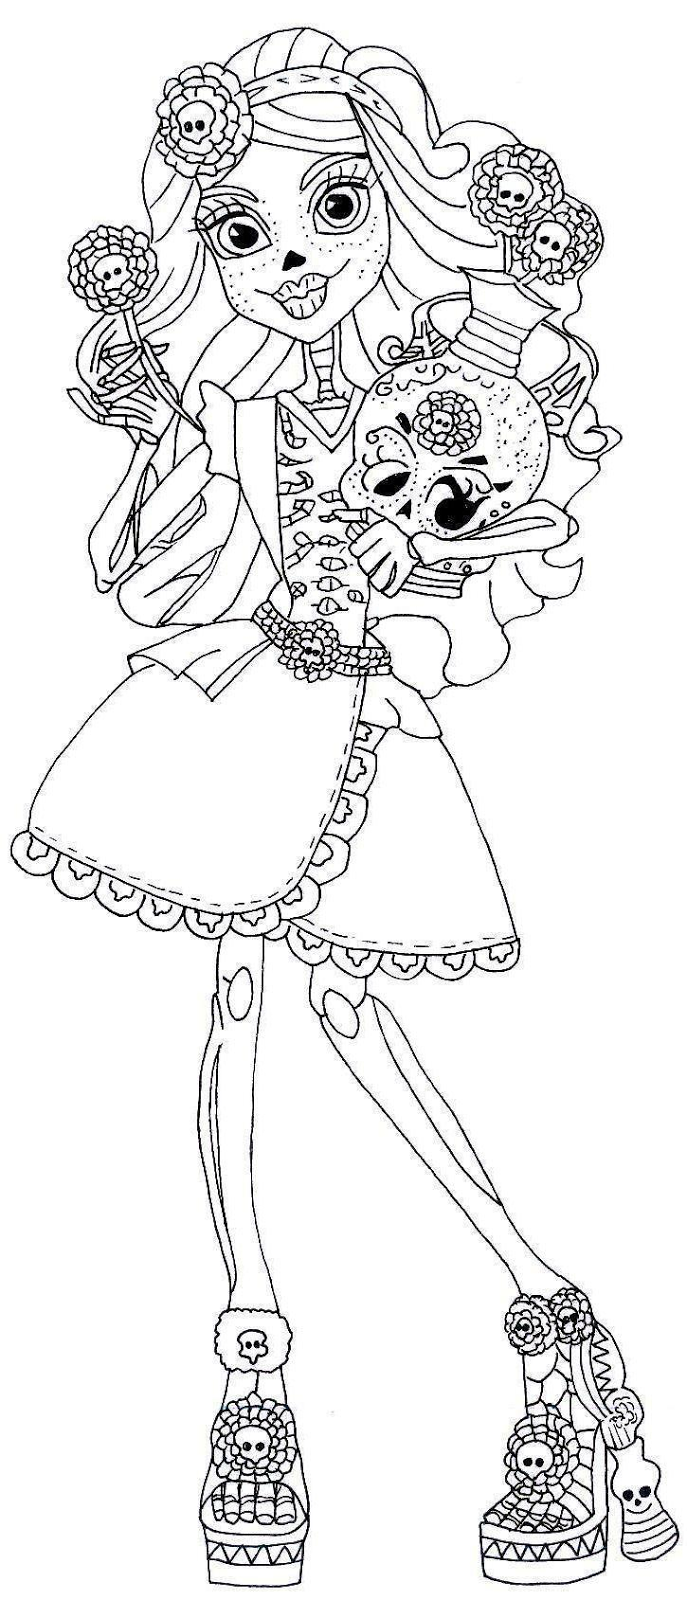 Free Printable Monster High Coloring Pages: Free Printable